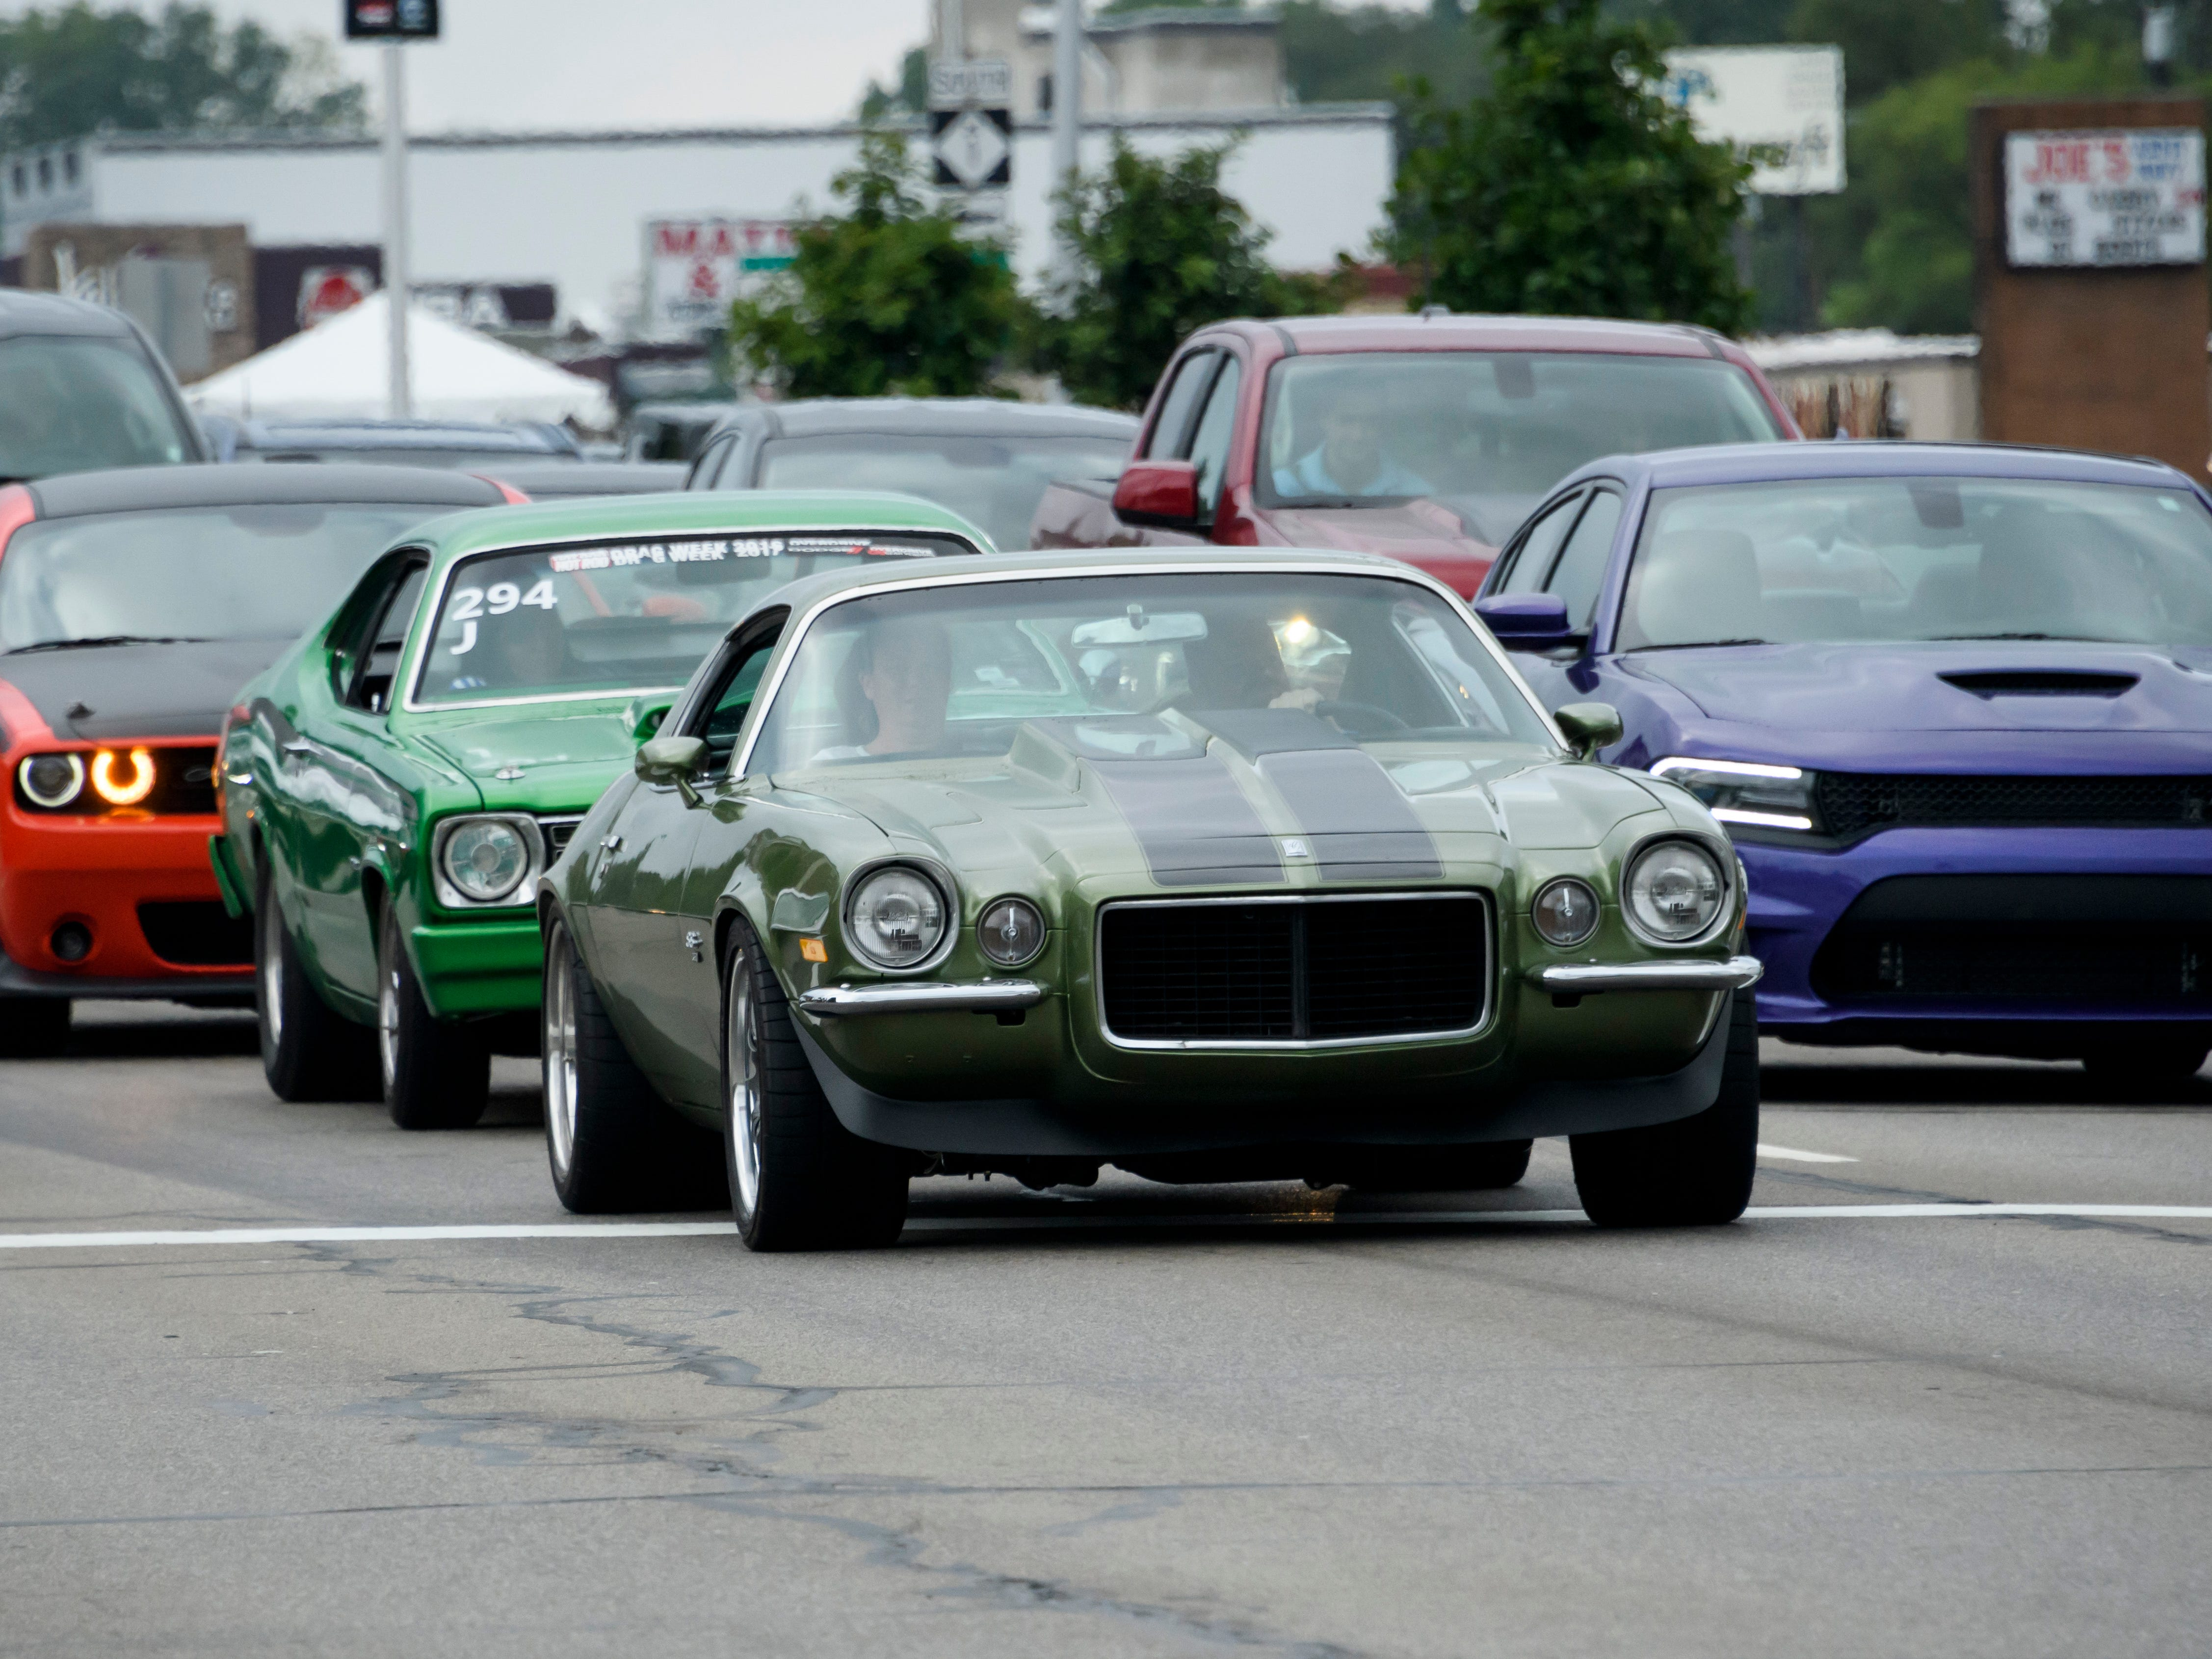 Classic cars of varying years line up Thursday at a red light on Woodward near Normandy in Royal Oak in preparation for the Dream Cruise.